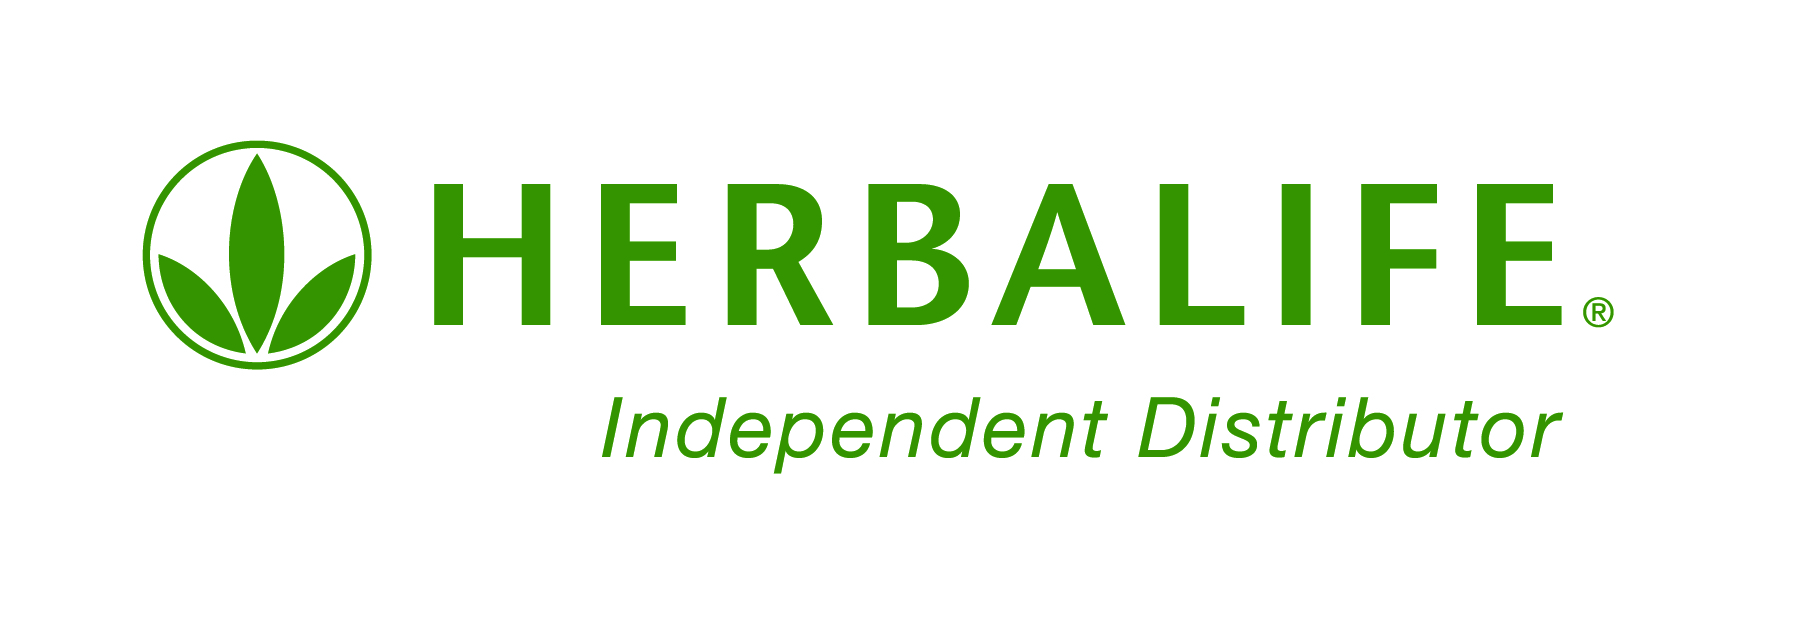 Herbalife products @  7065231457  in Delhi at Discounts Avaliable - logo